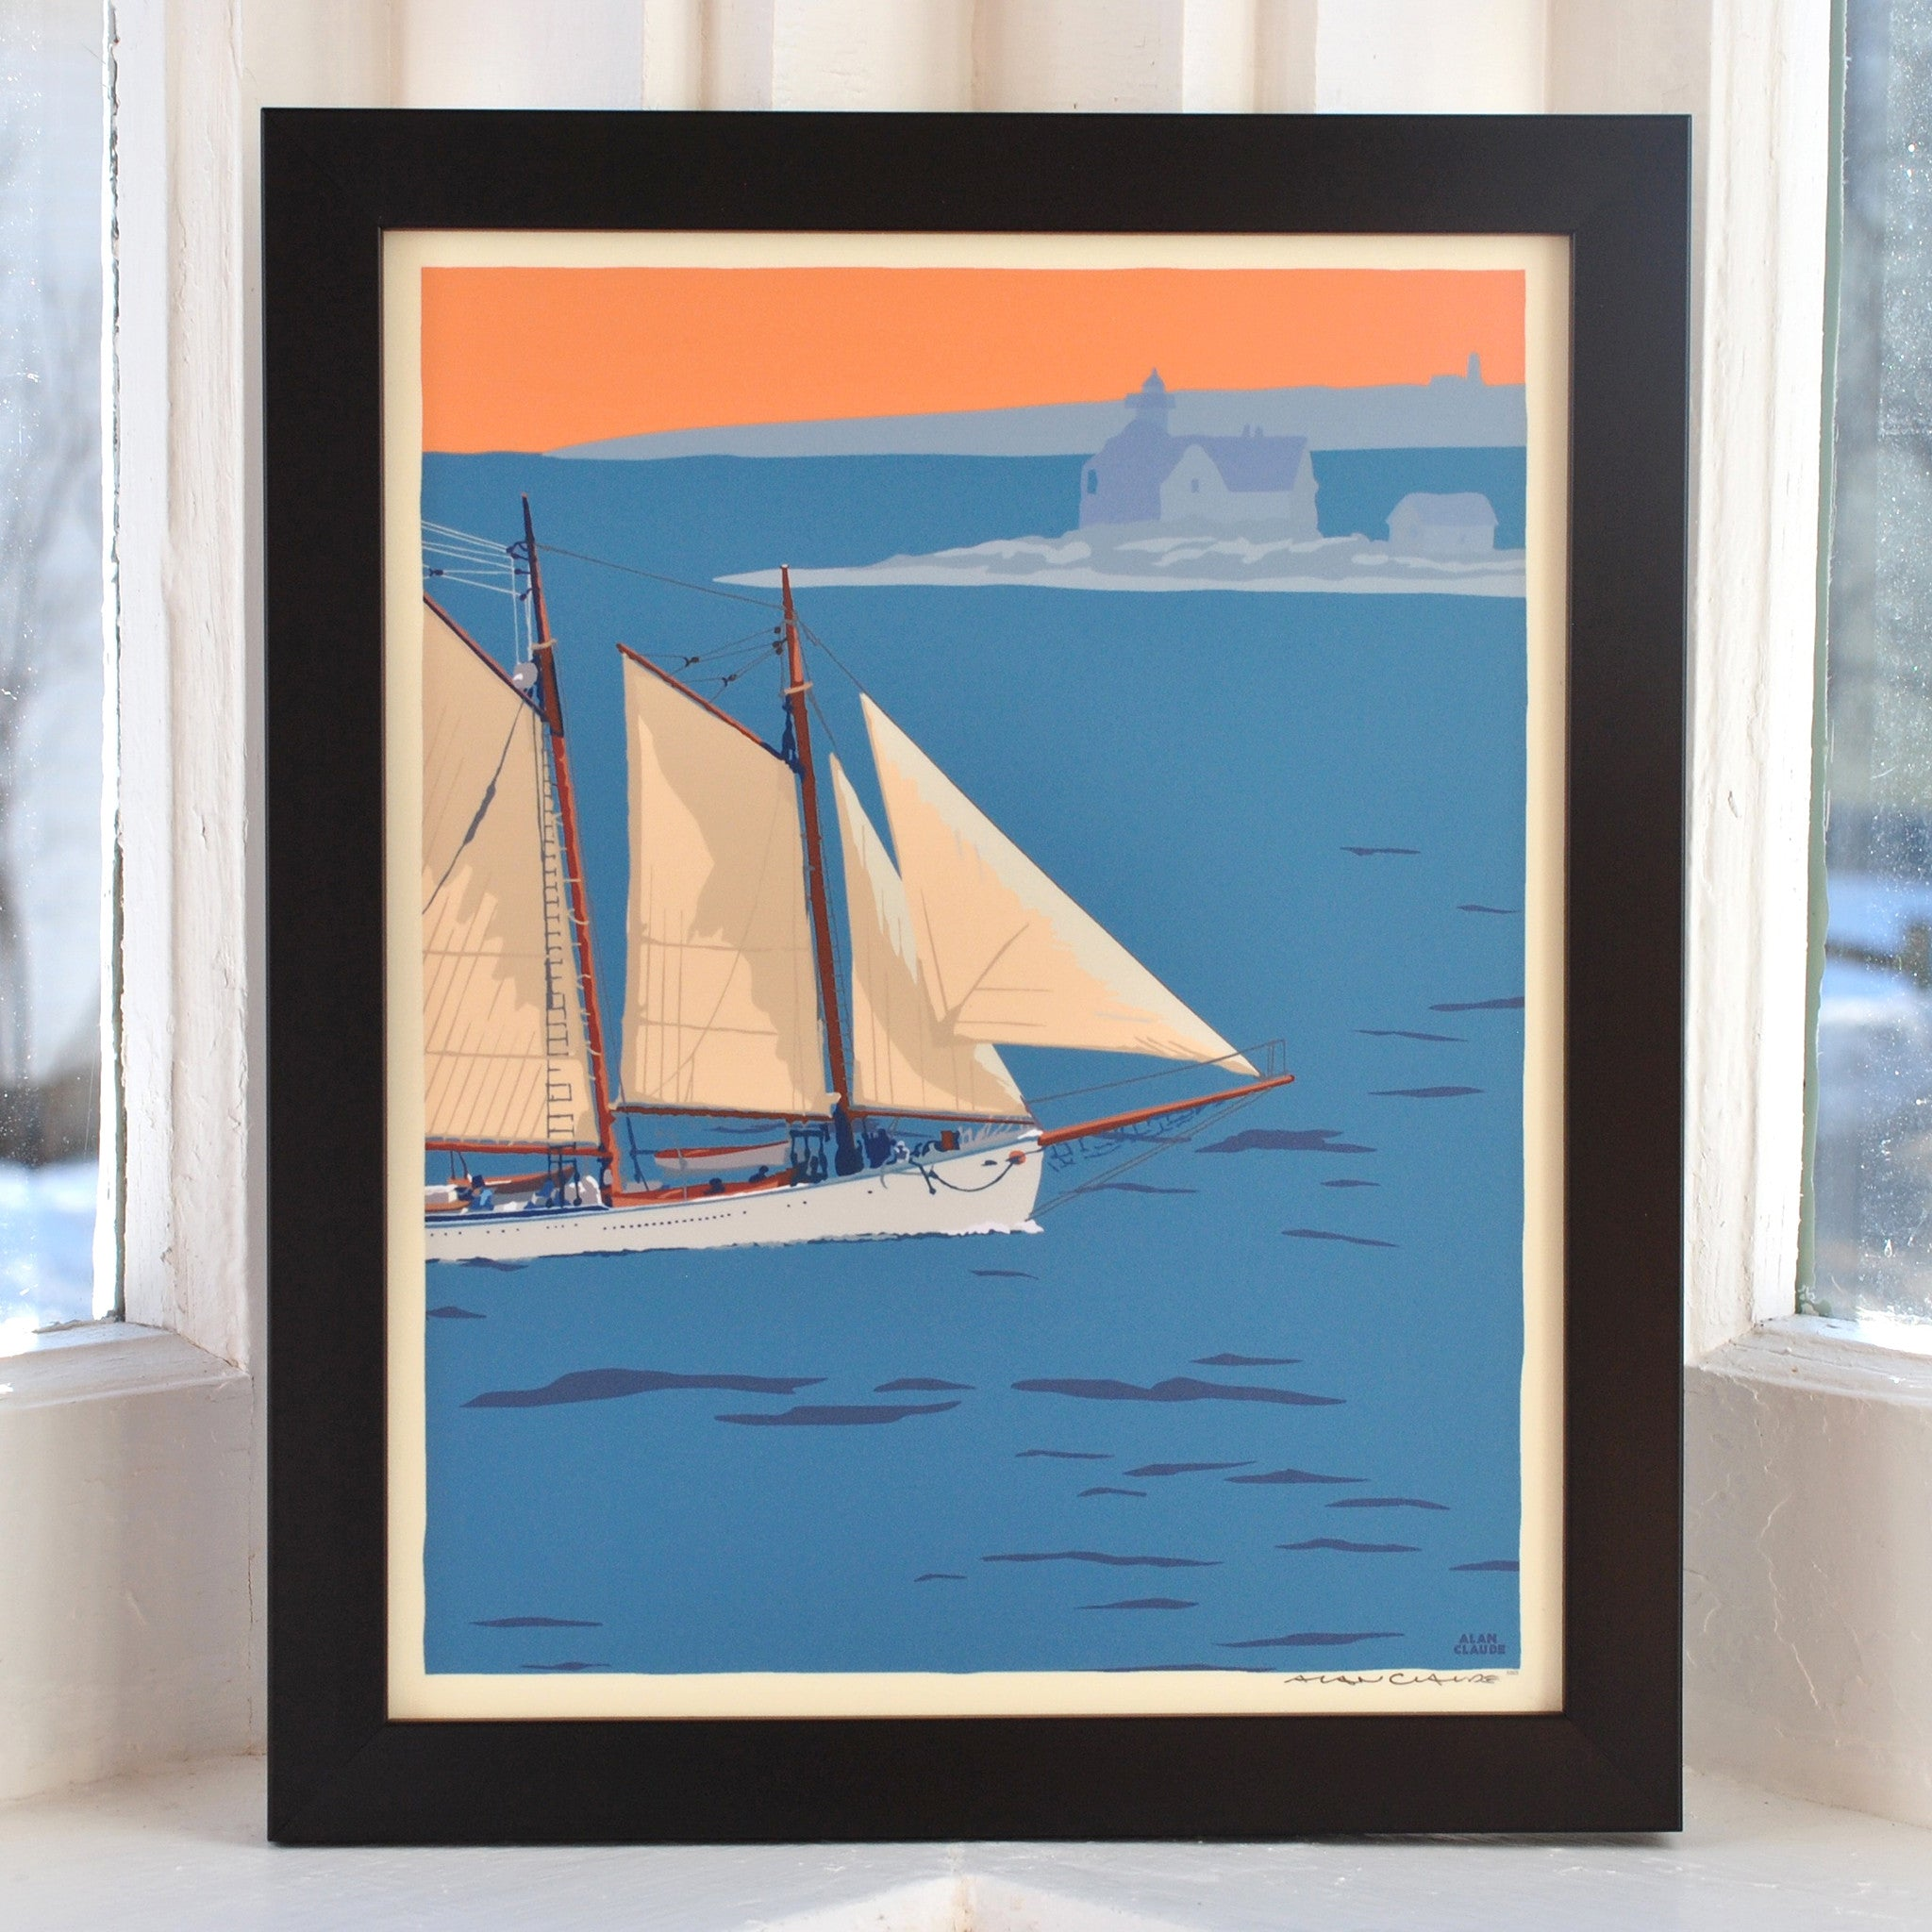 "Schooner at the Cuckolds Art Print 8"" x 10"" Framed Wall Poster - Maine"